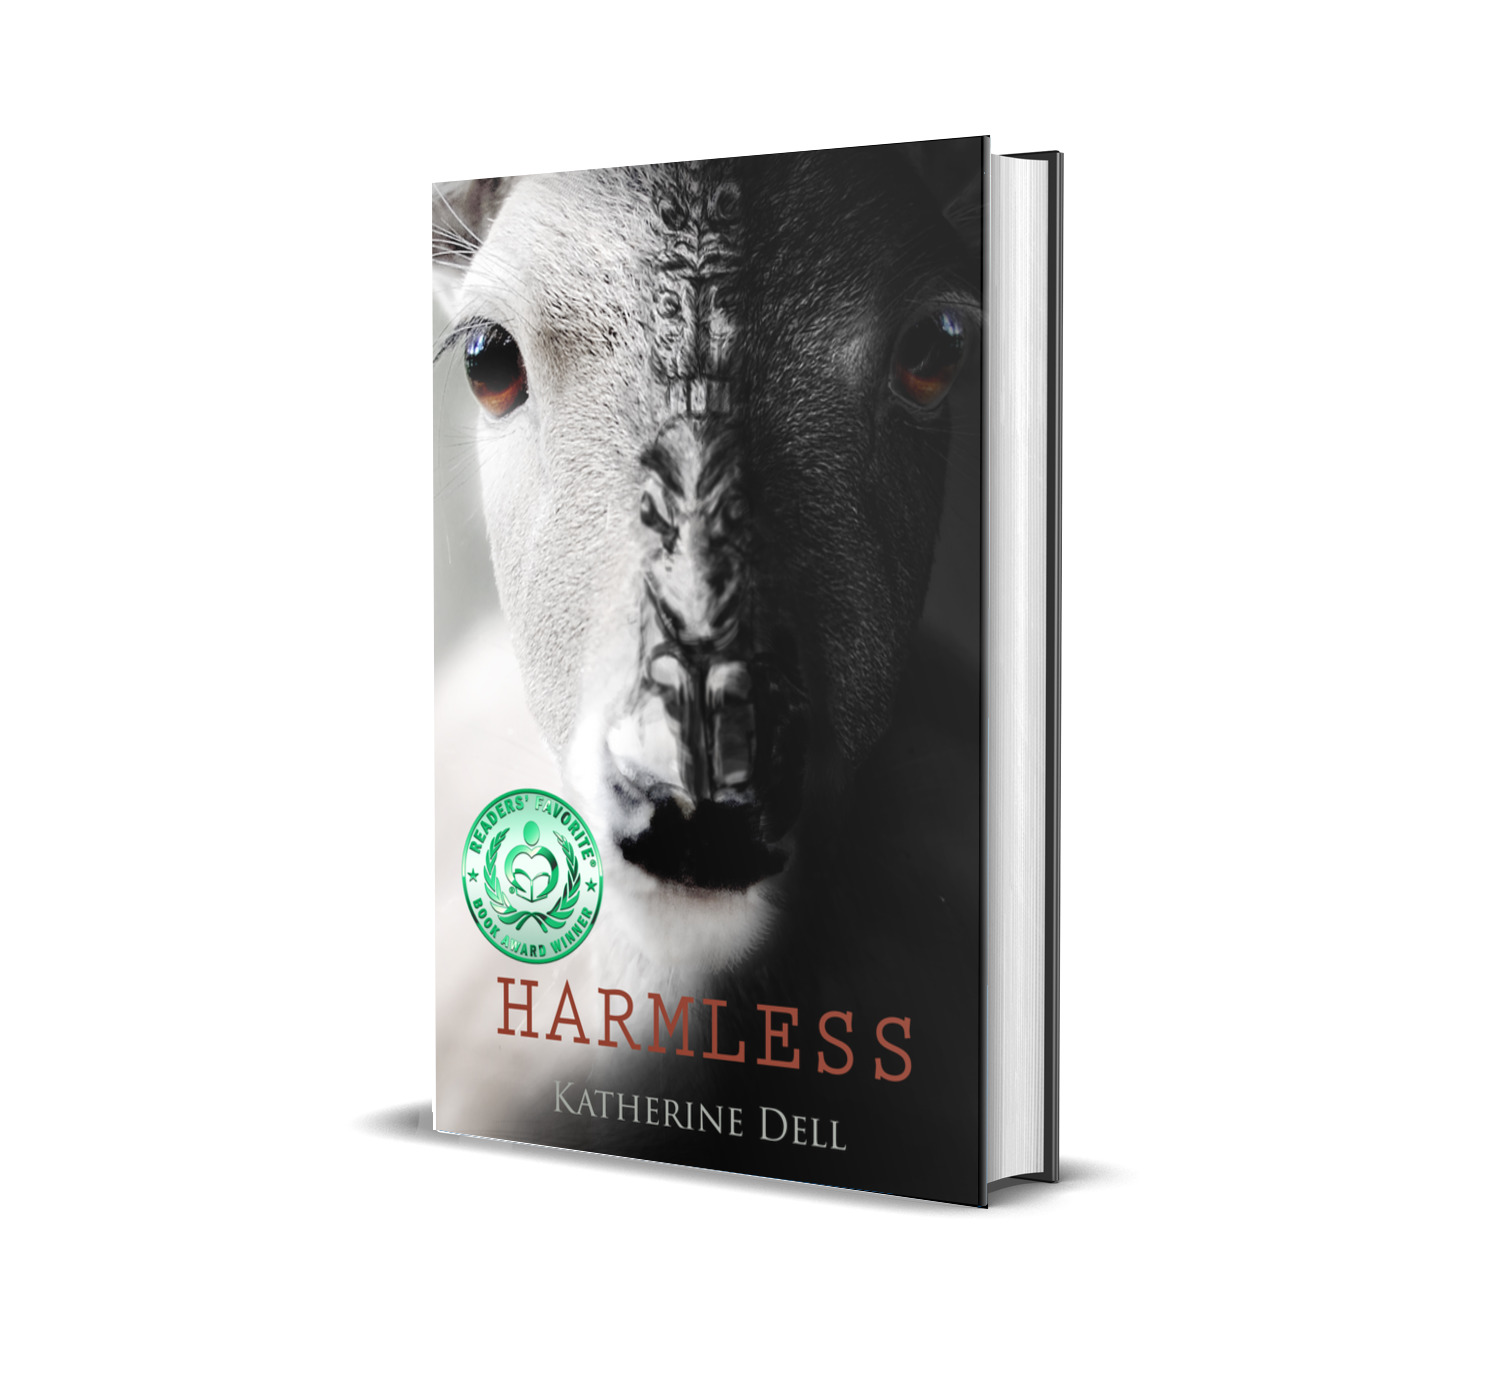 Harmless single cover mockup with green seal